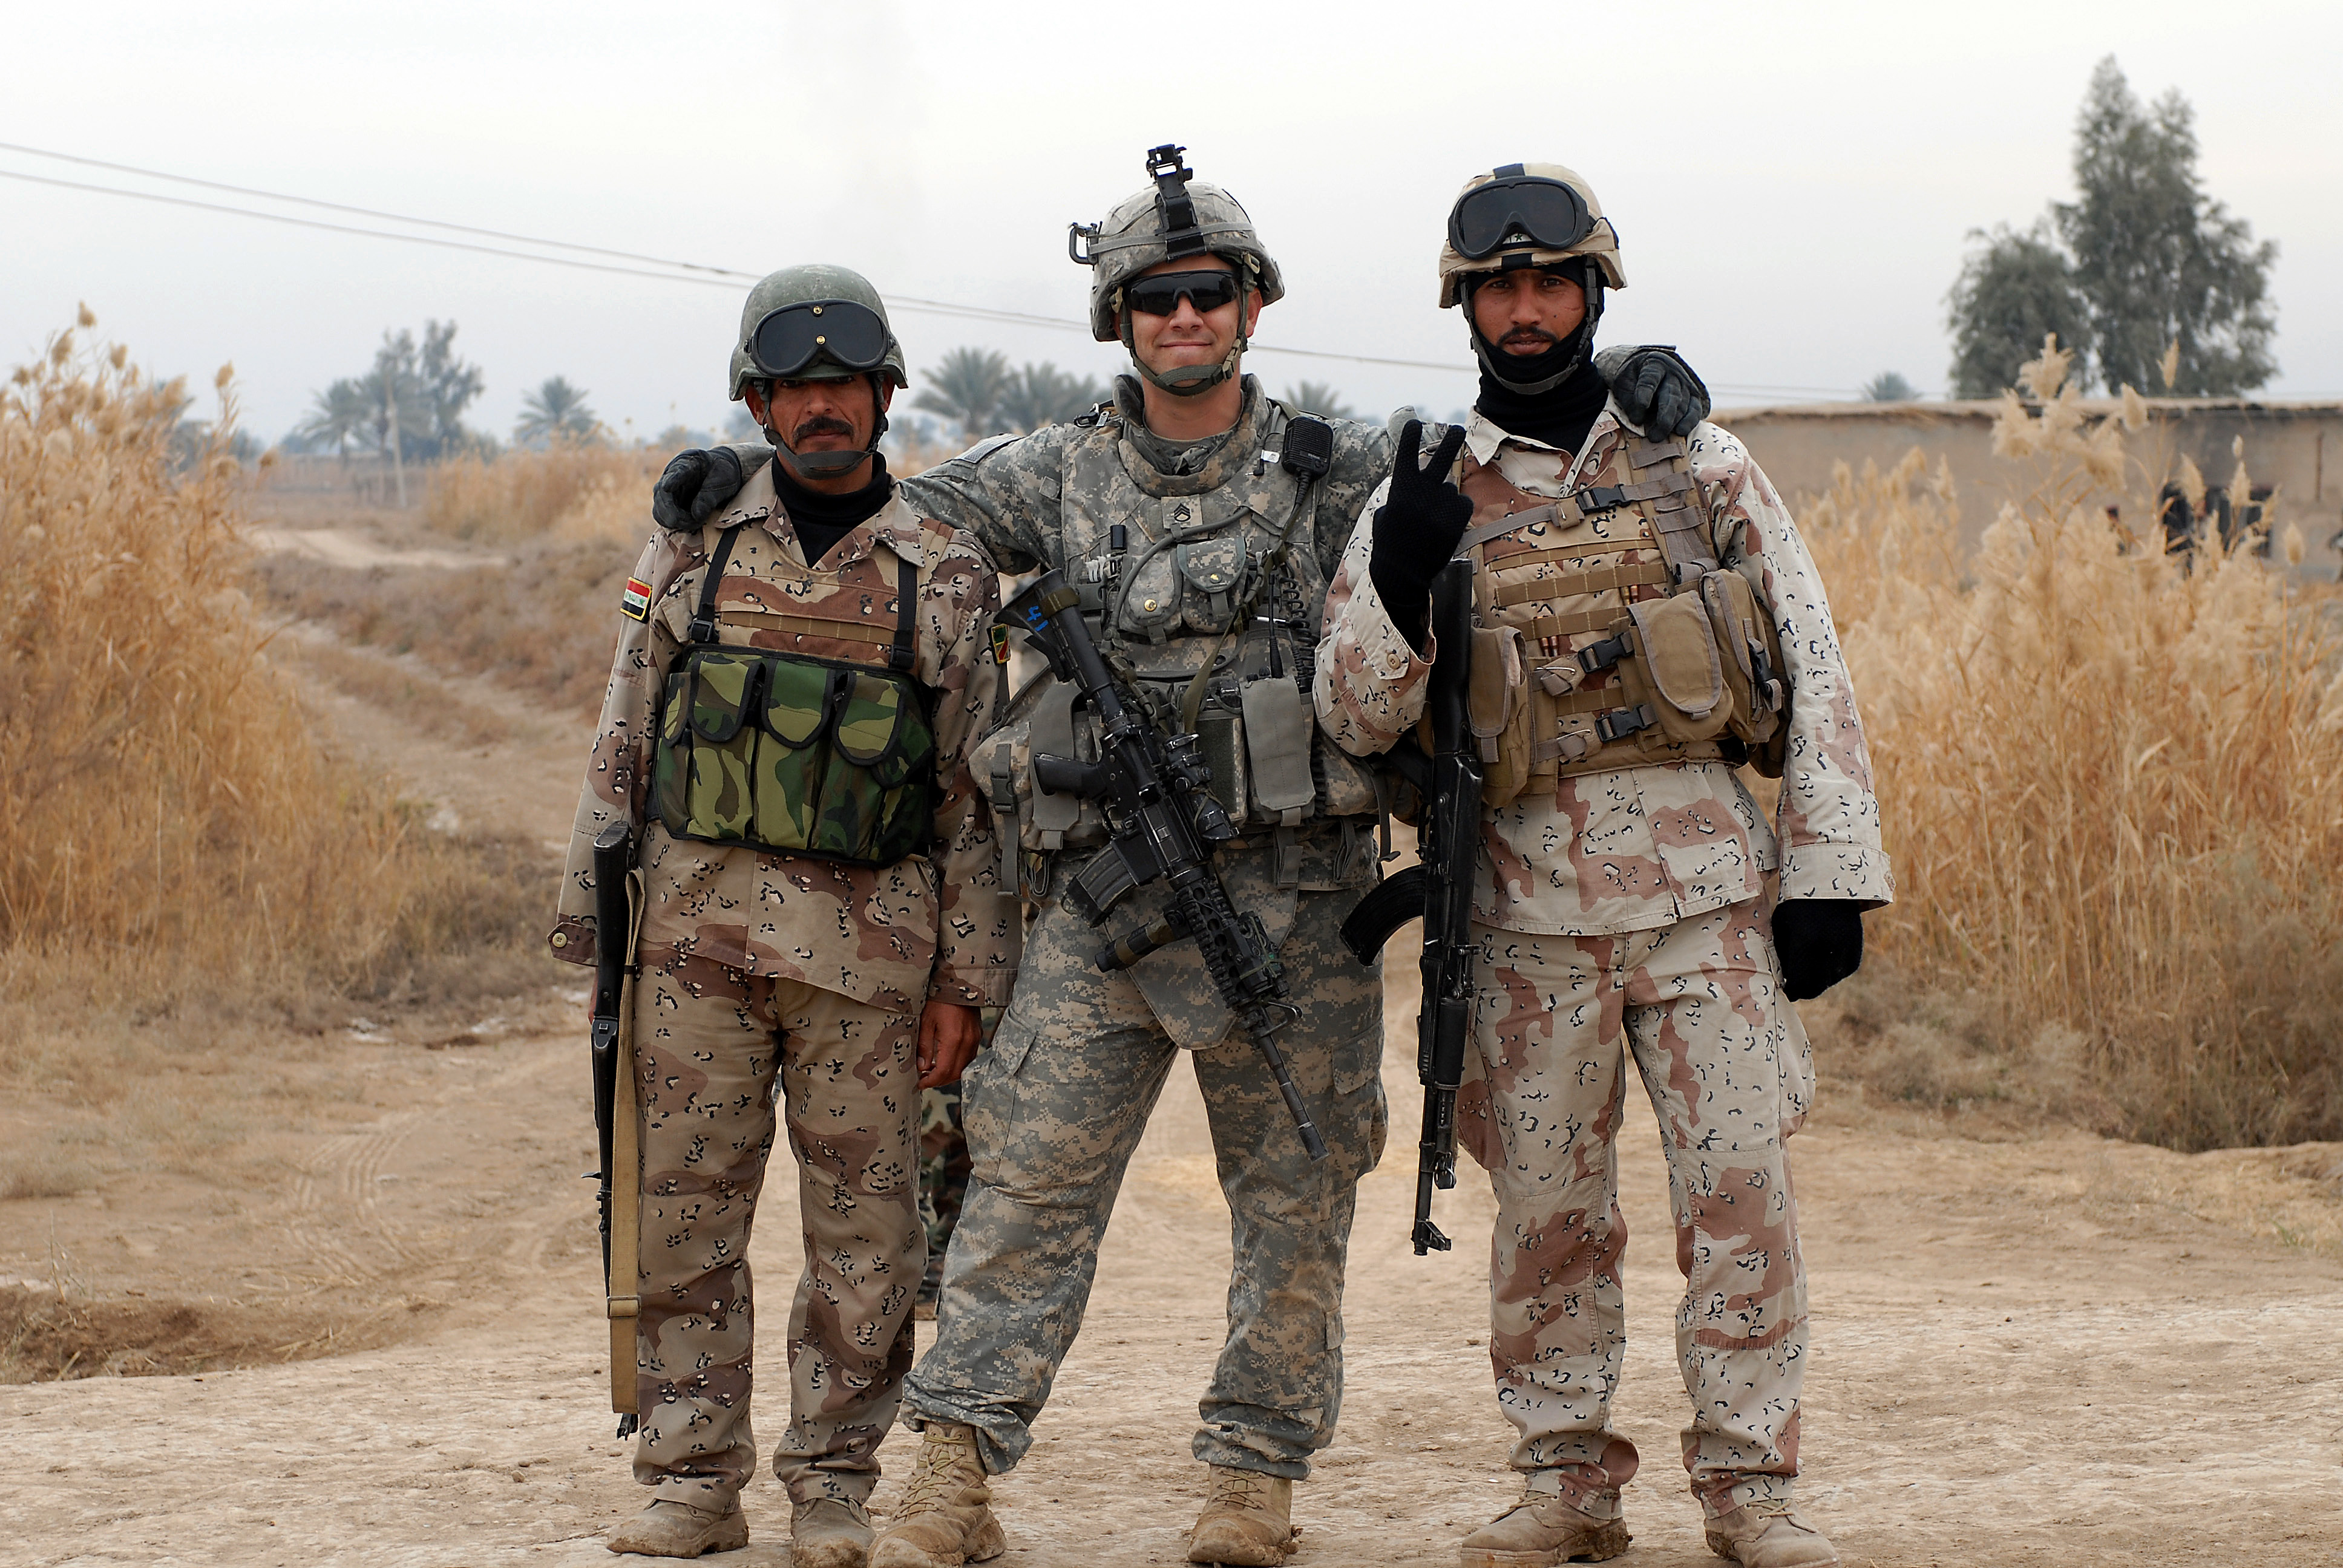 United States Army soldiers